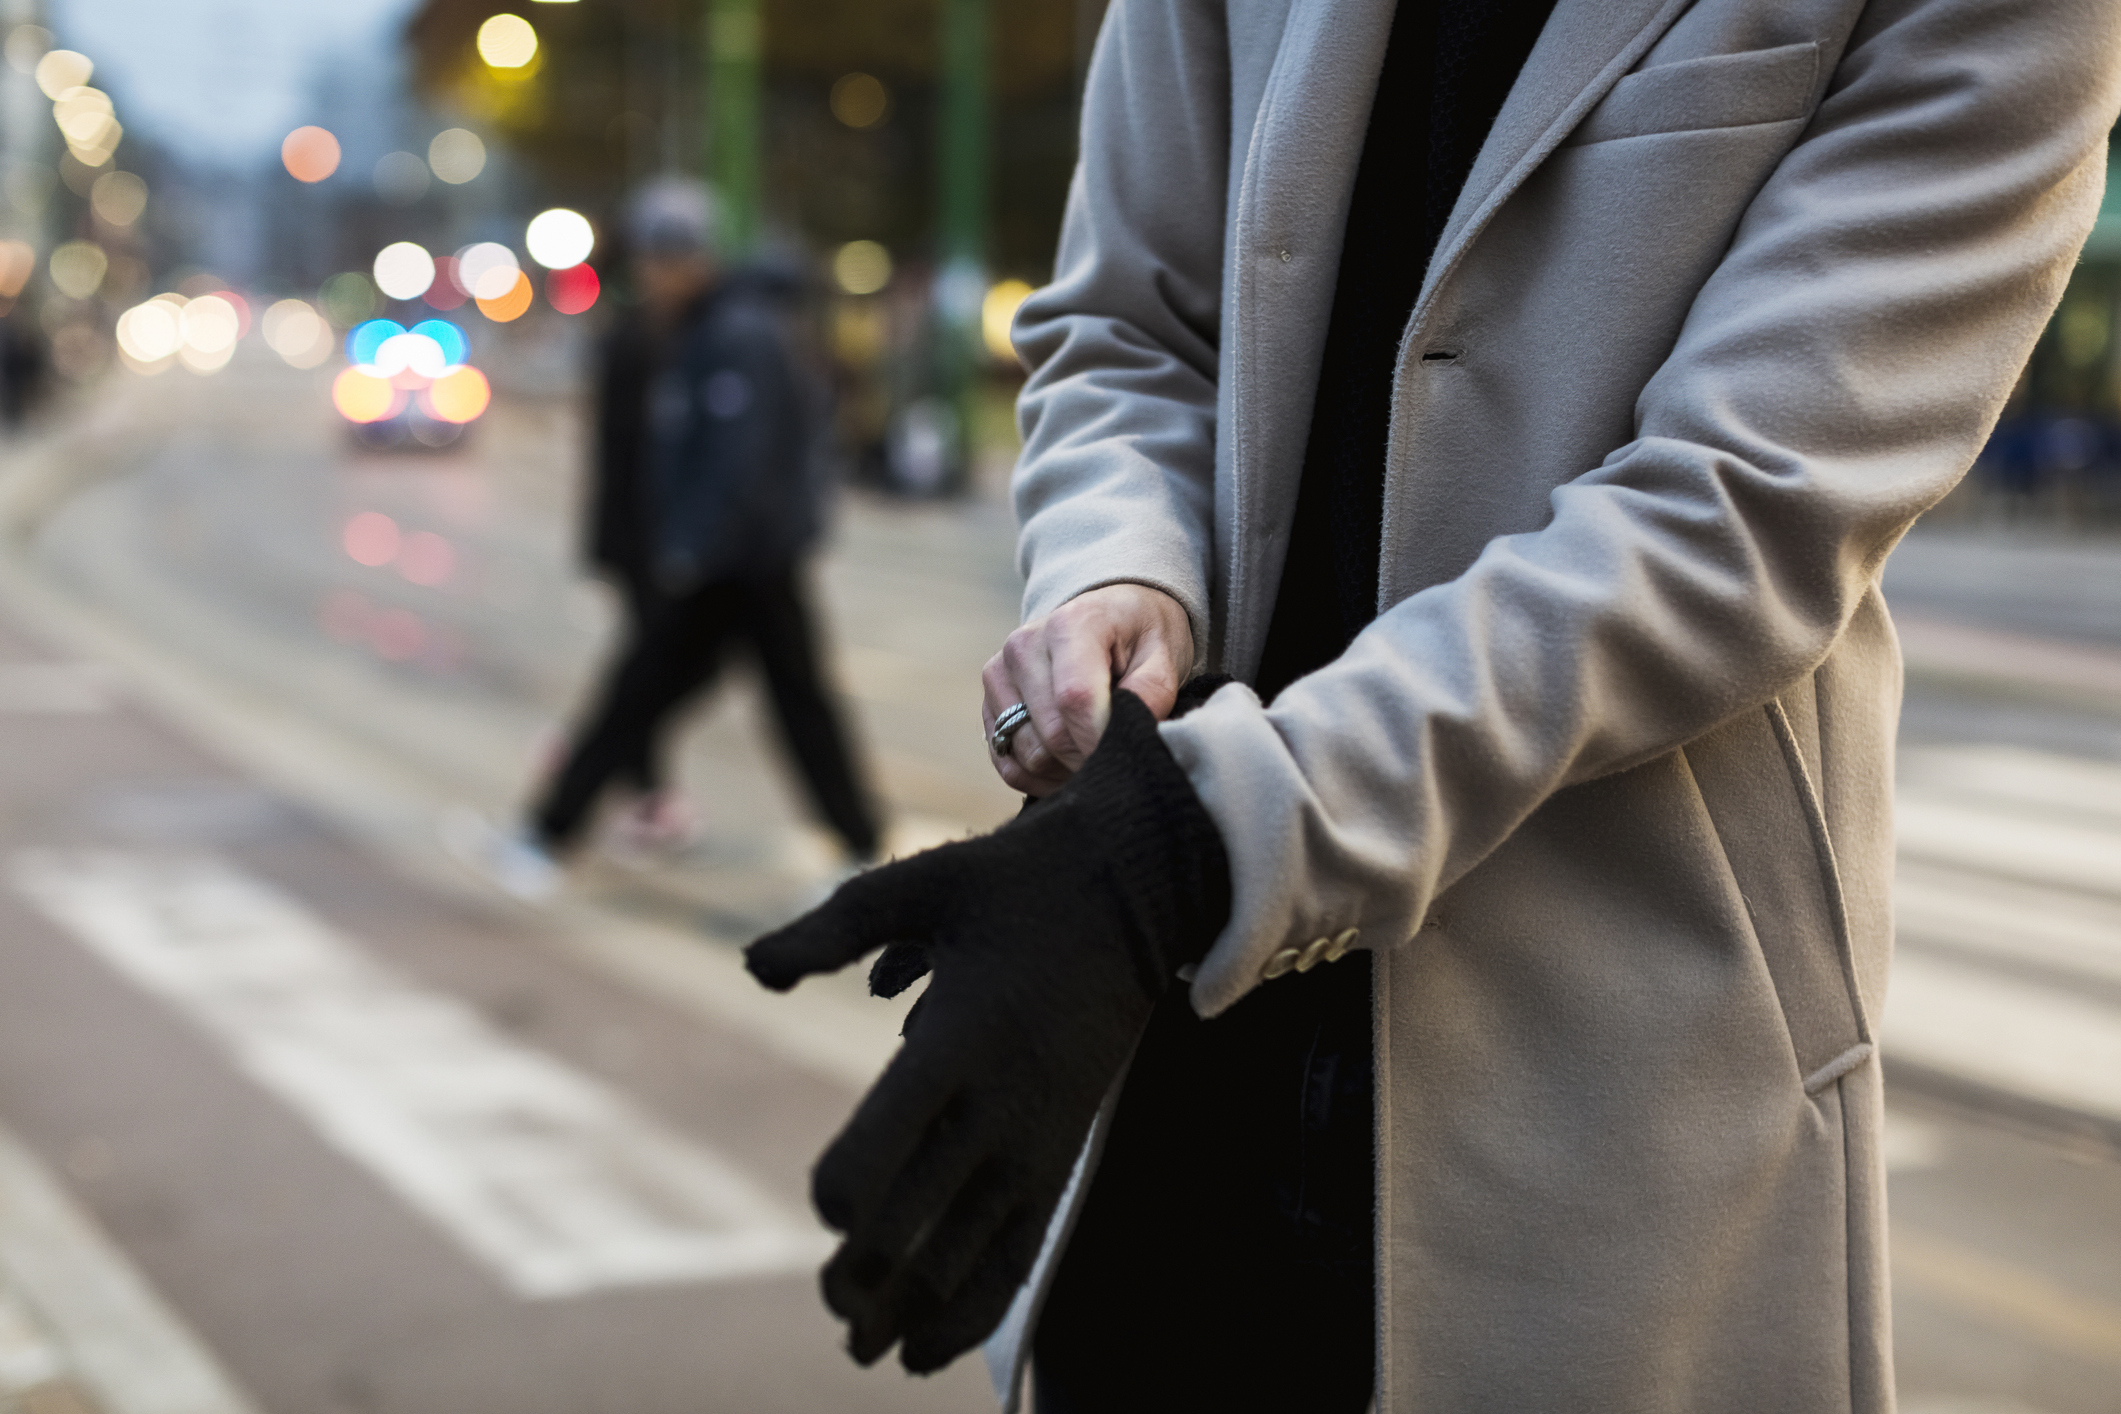 Study reveals that winter gloves contain five times more bacteria than the average toilet seat